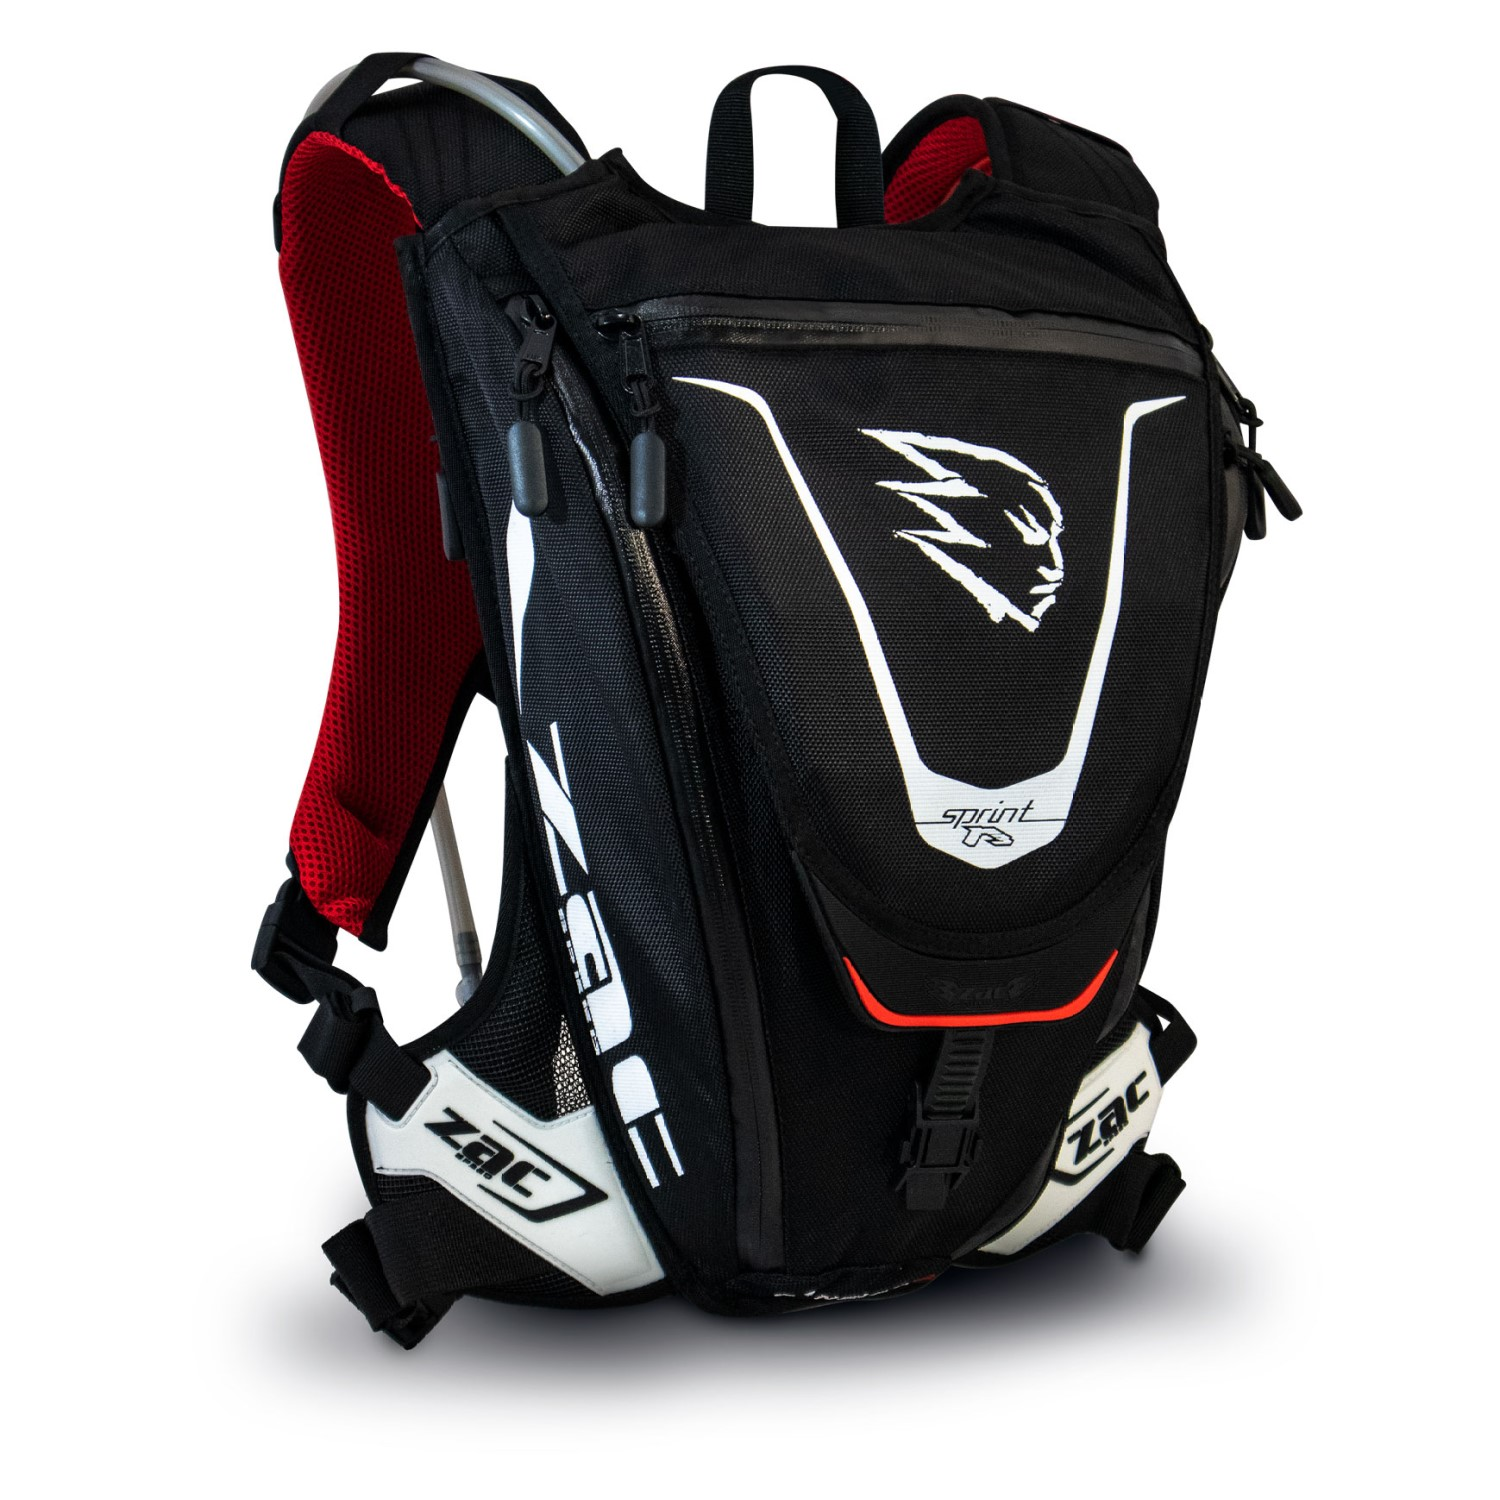 Sprint R3 Enduro Backpack